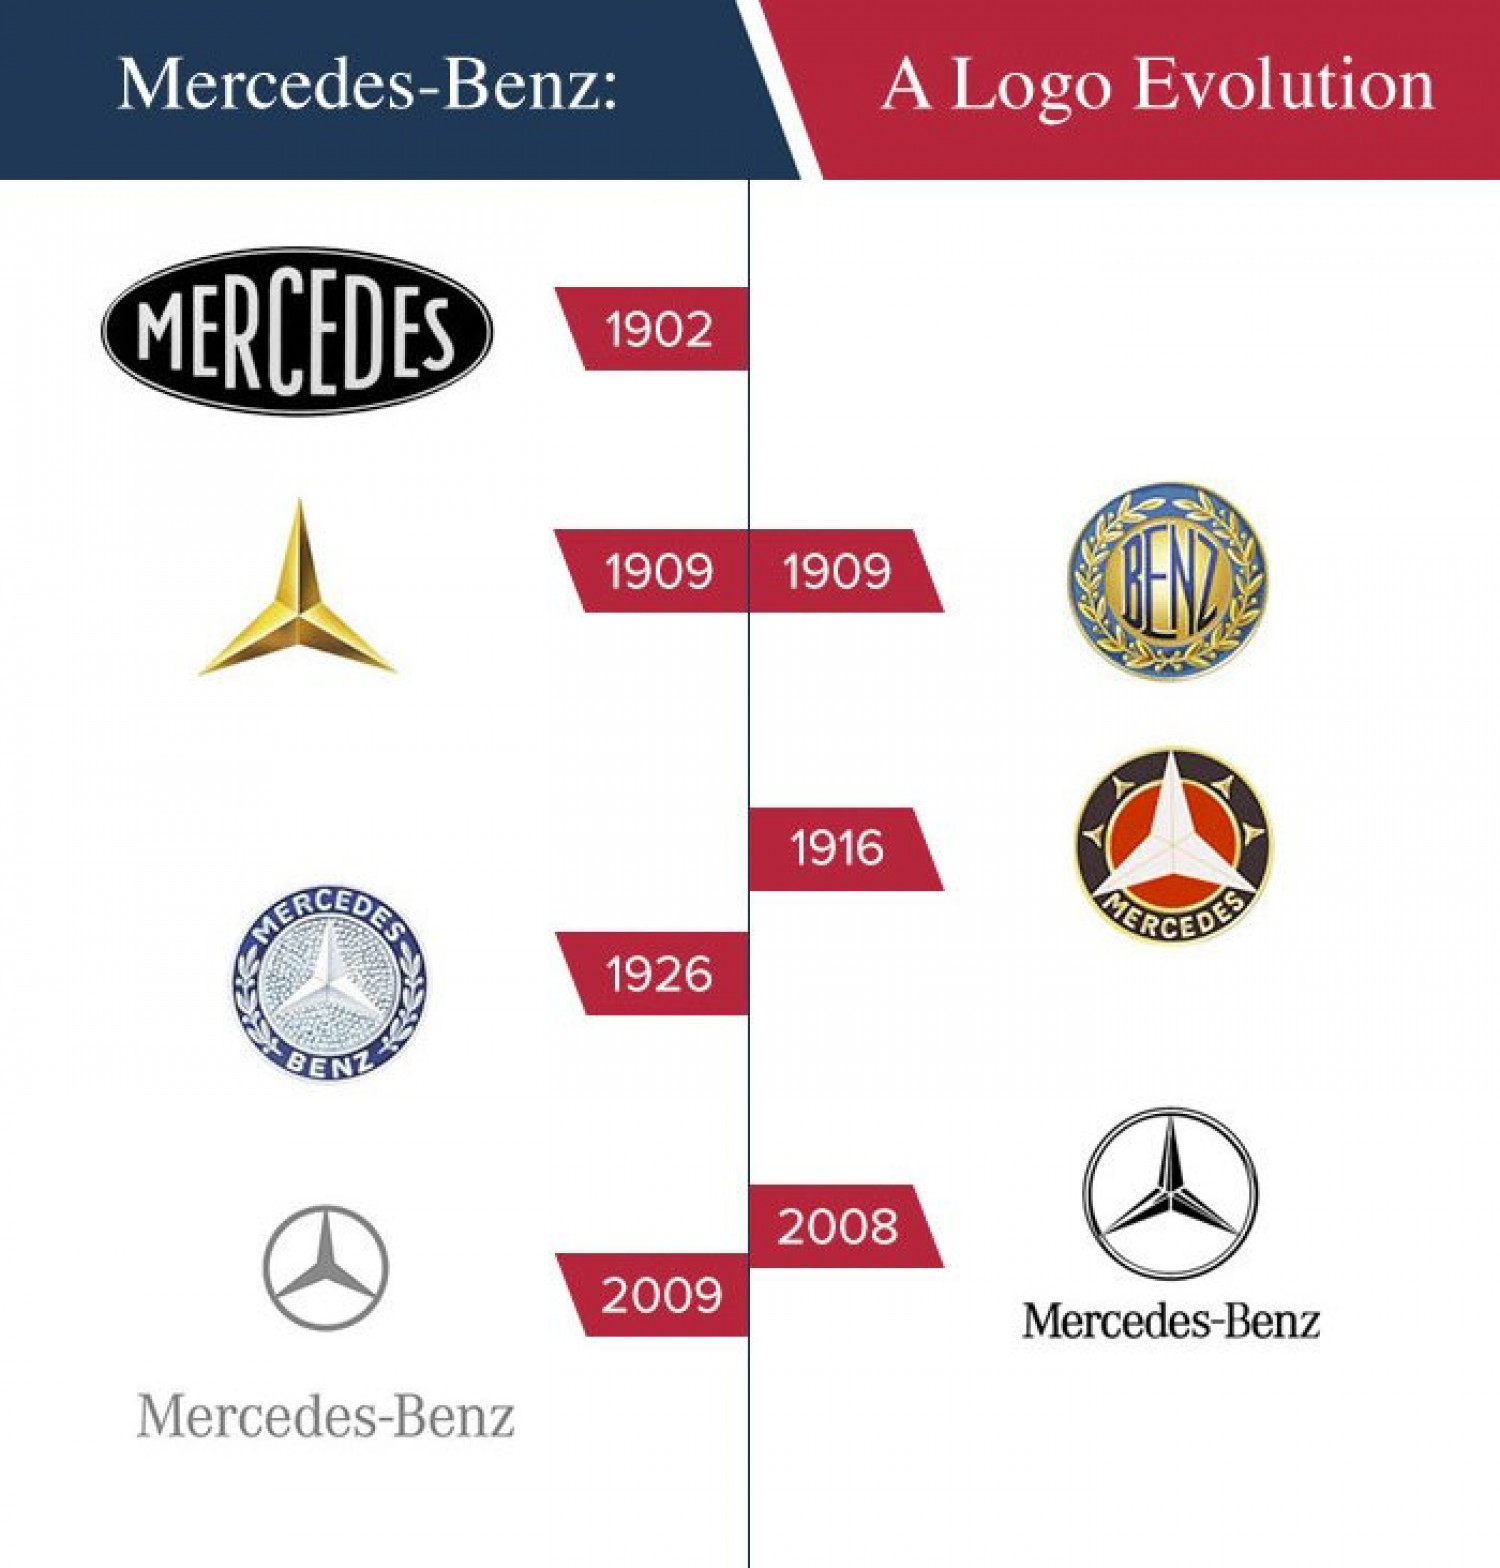 Cargiant Celebrates Mercedes-Benz Infographic